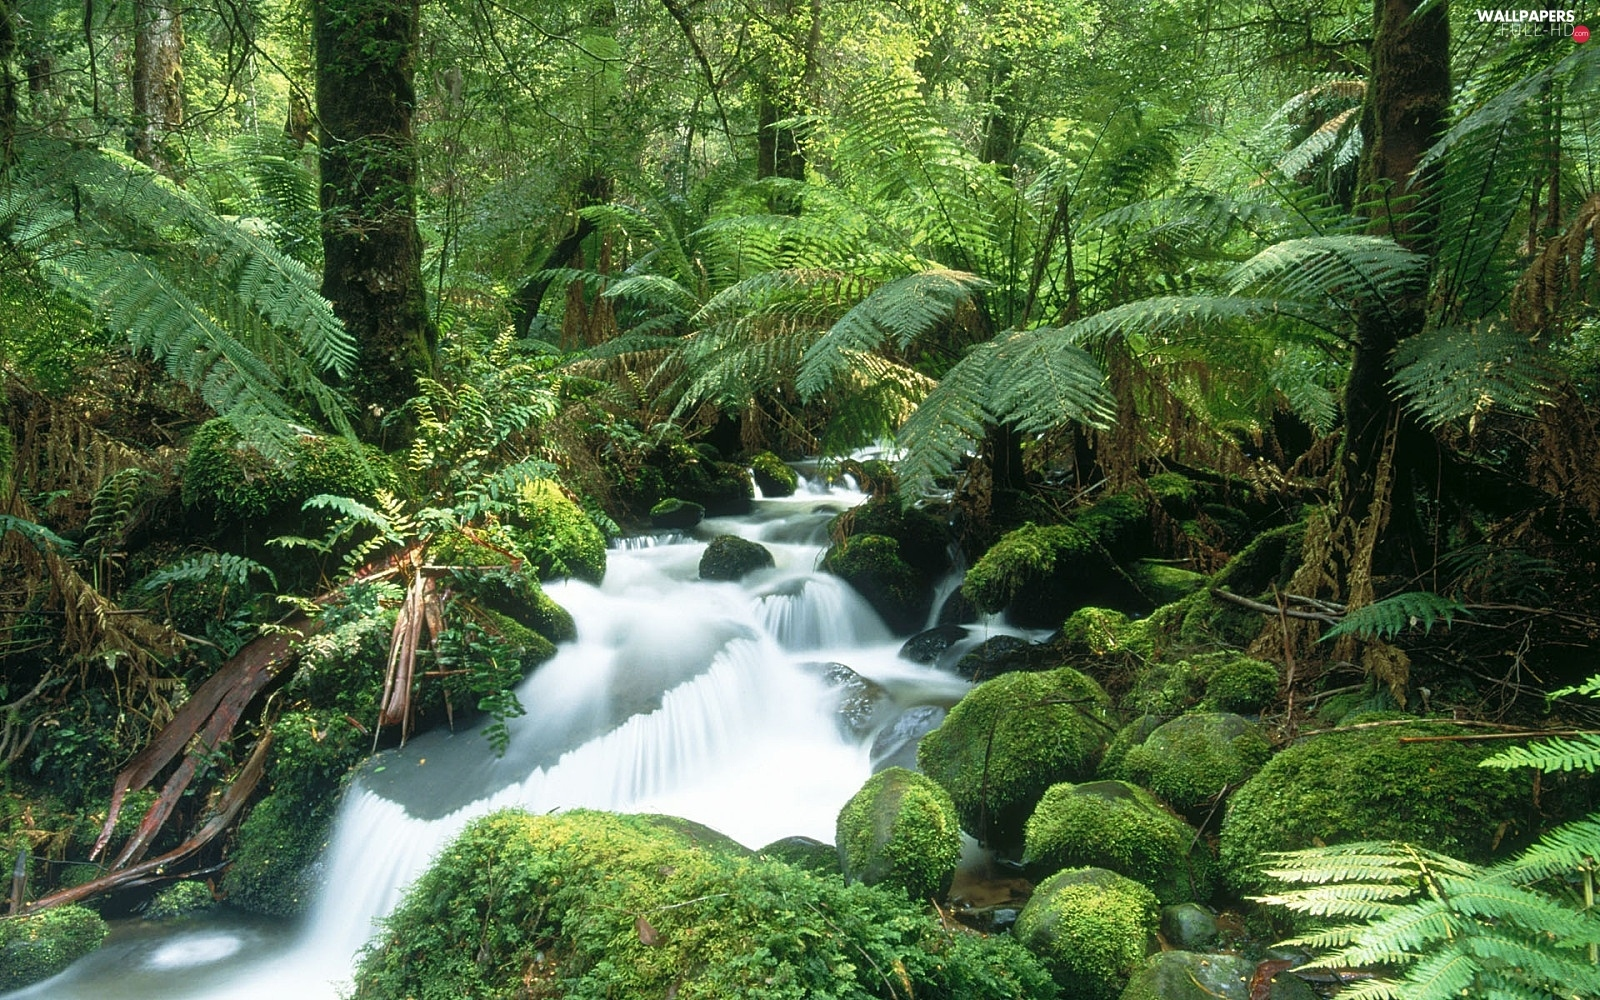 Fern, Stones, River, mossy